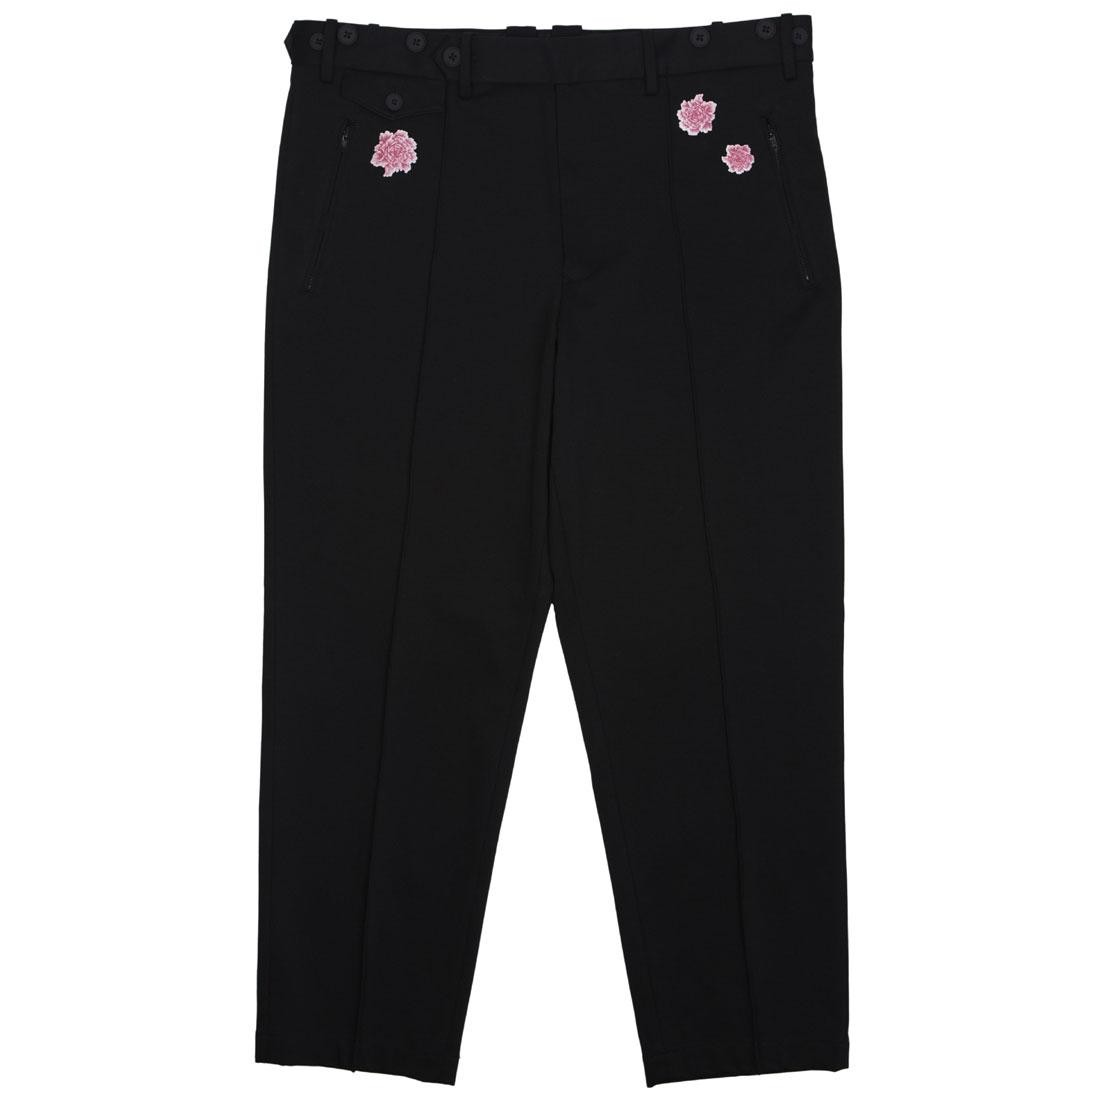 22c374f5570 Adidas Y-3 x James Harden Men Cropped Slim Pants black